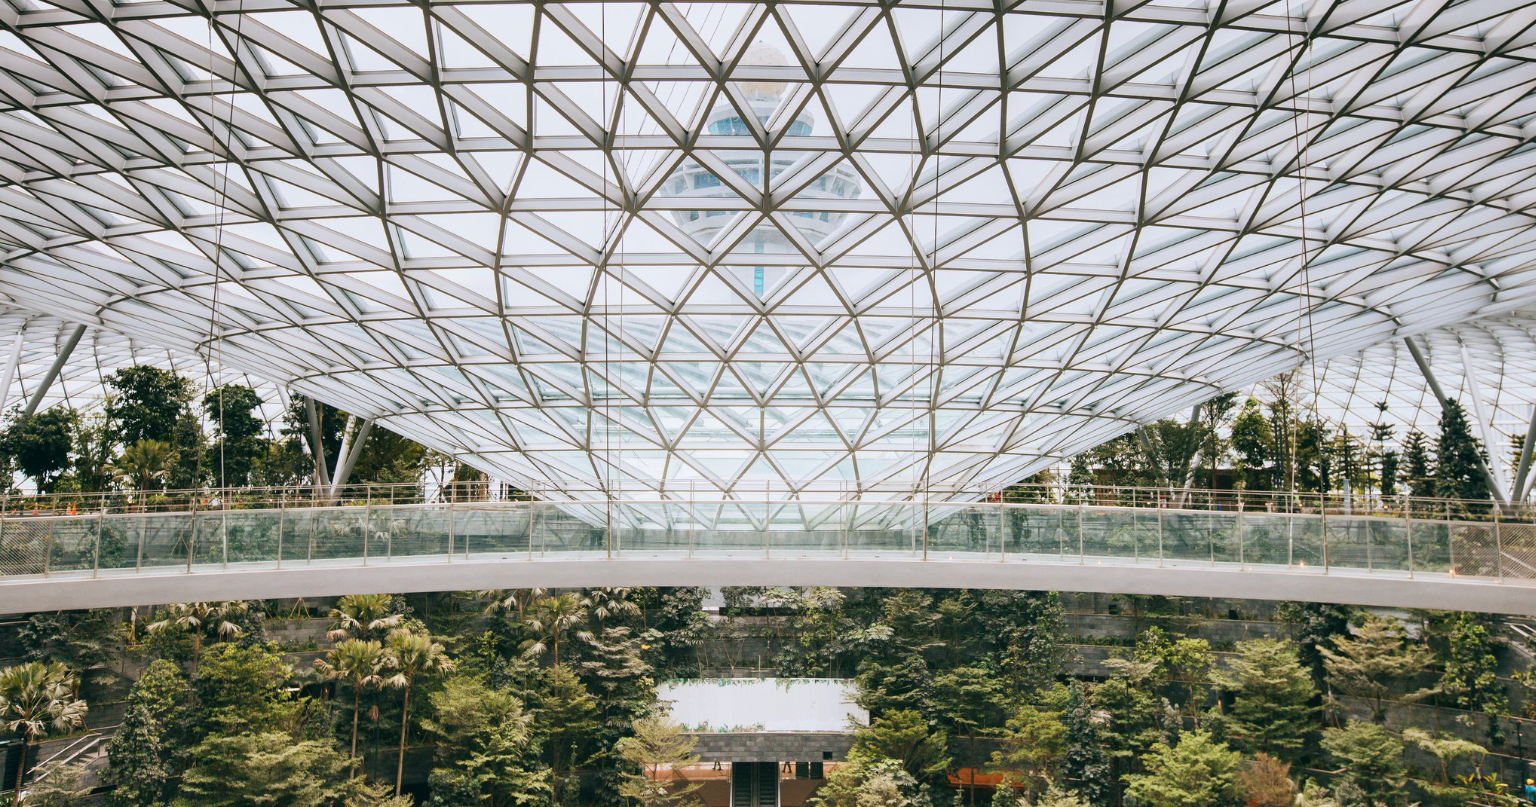 Apple Is Reportedly Opening 2 Stores At Jewel Changi And MBS 8211 And They8217re Hiring